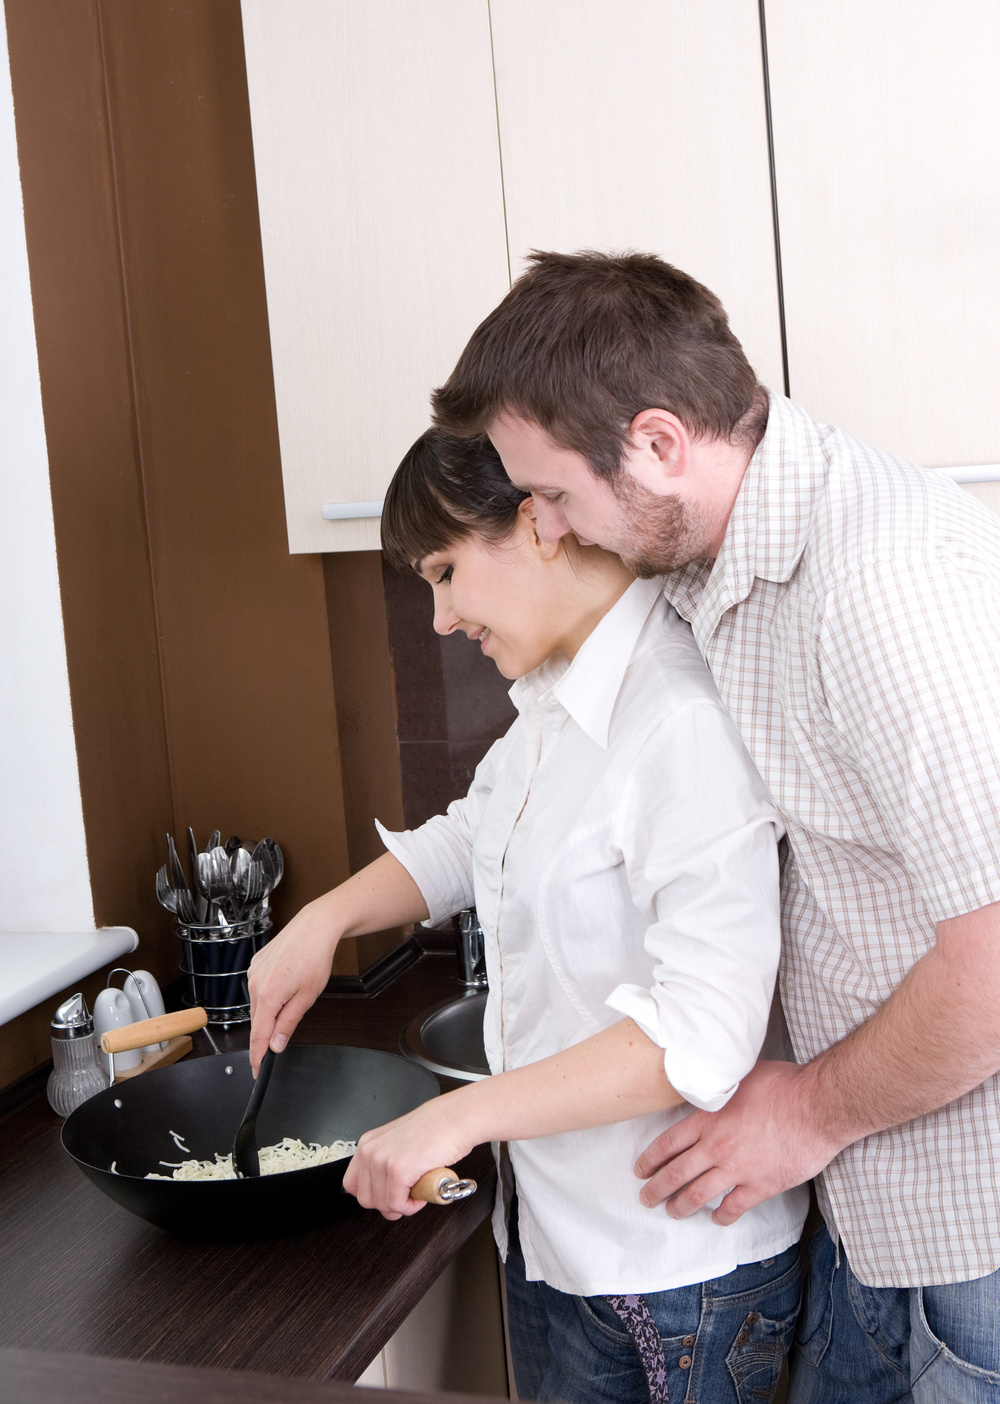 Couple cooking_17169080_Subscription_L.jpg